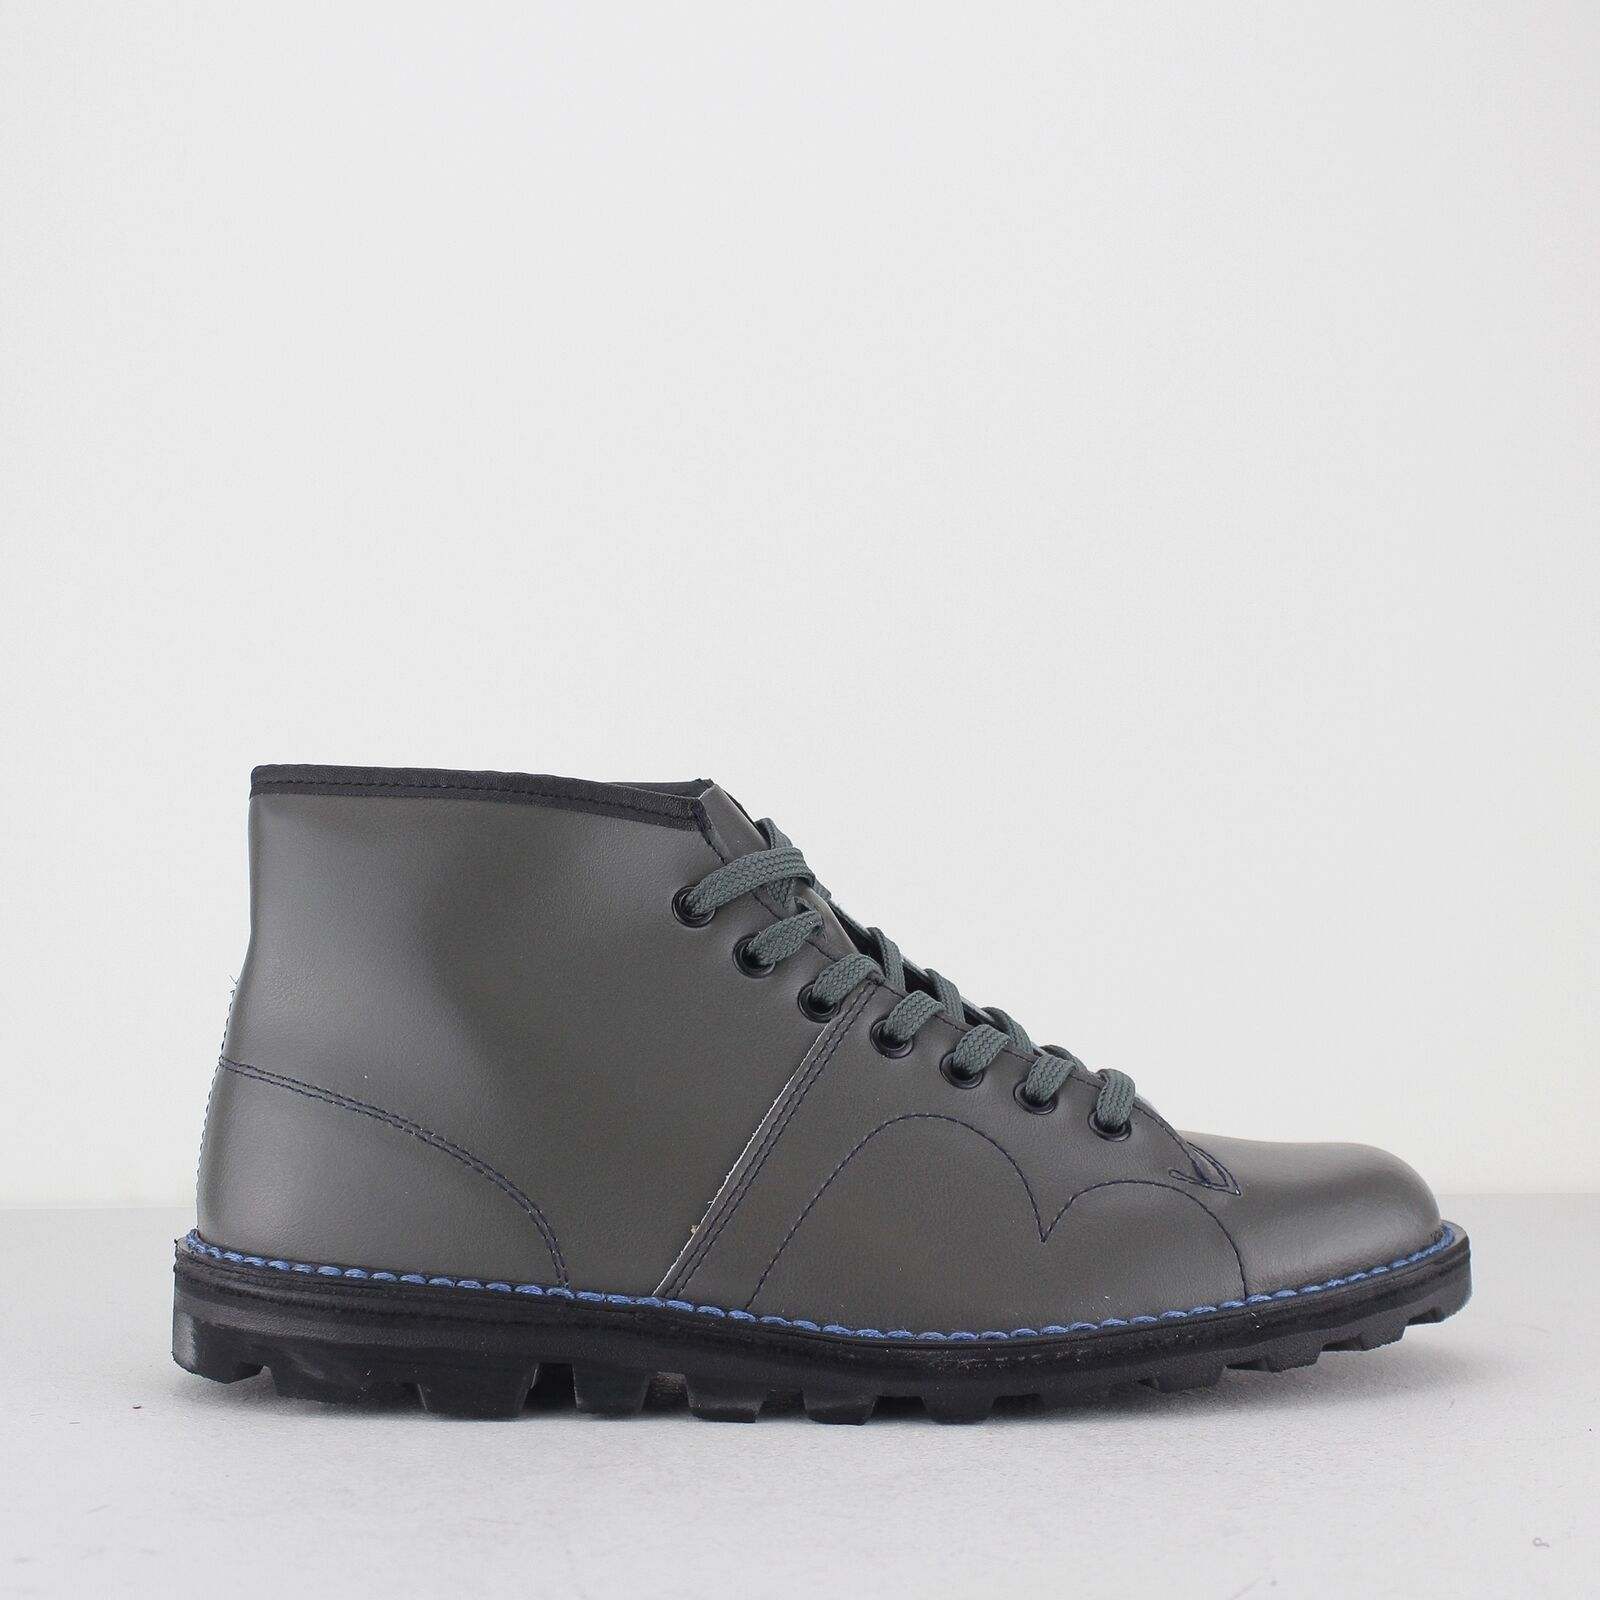 Grafters UNISEX Mens Womens Coated Leather Original Leather Monkey Boots Grey